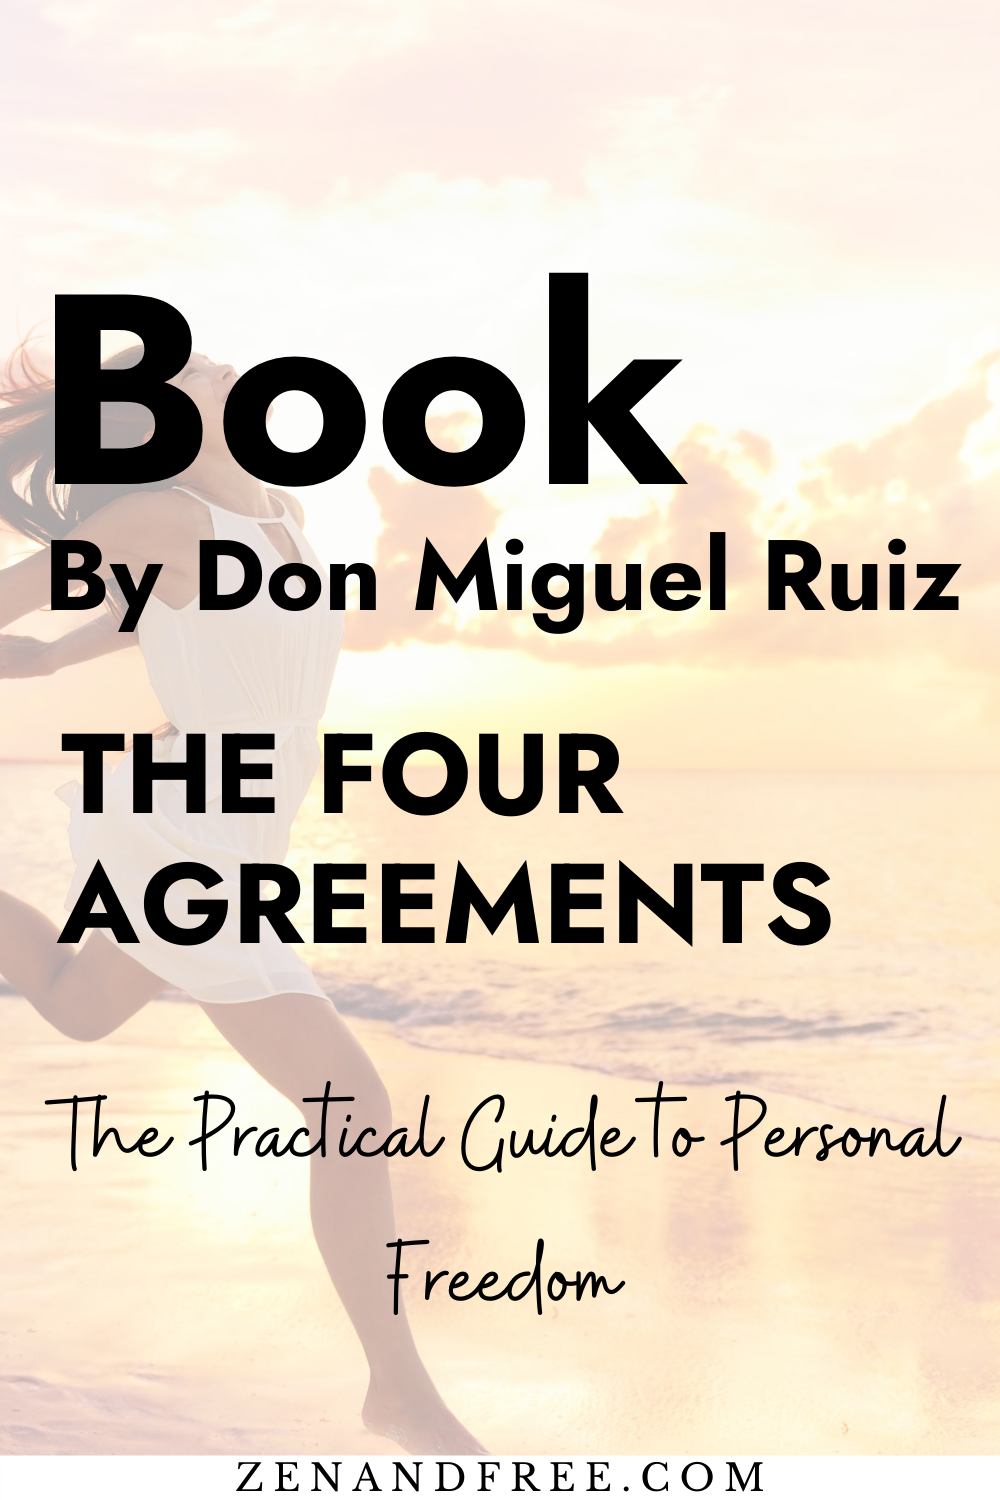 The Four Agreements by Don Miguel Ruiz will change your life. This self-help book impacted my life in such a positive way. It will change the way you look at life. #books#lifechangingbooks #selfhelp#zen#spirituality